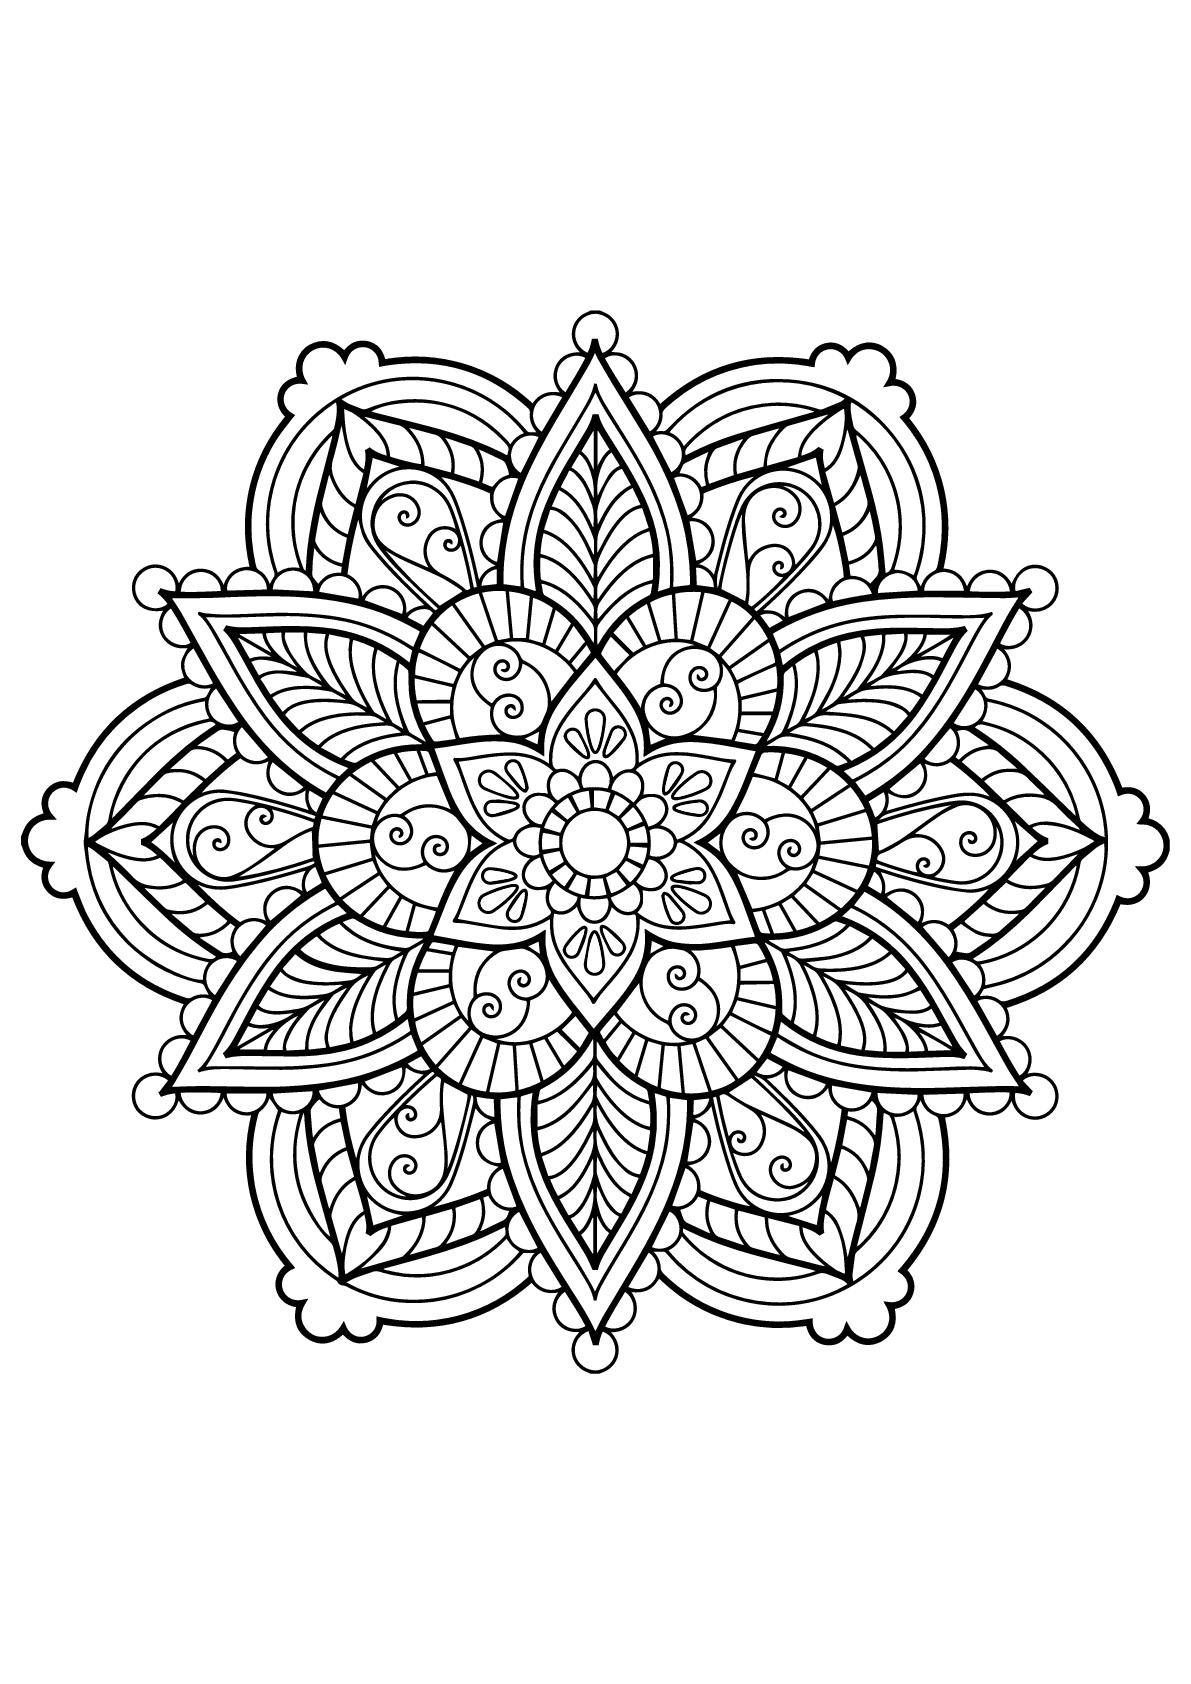 Mandala From Free Coloring Books For Adults 28 Mandalas Adult Coloring Pages